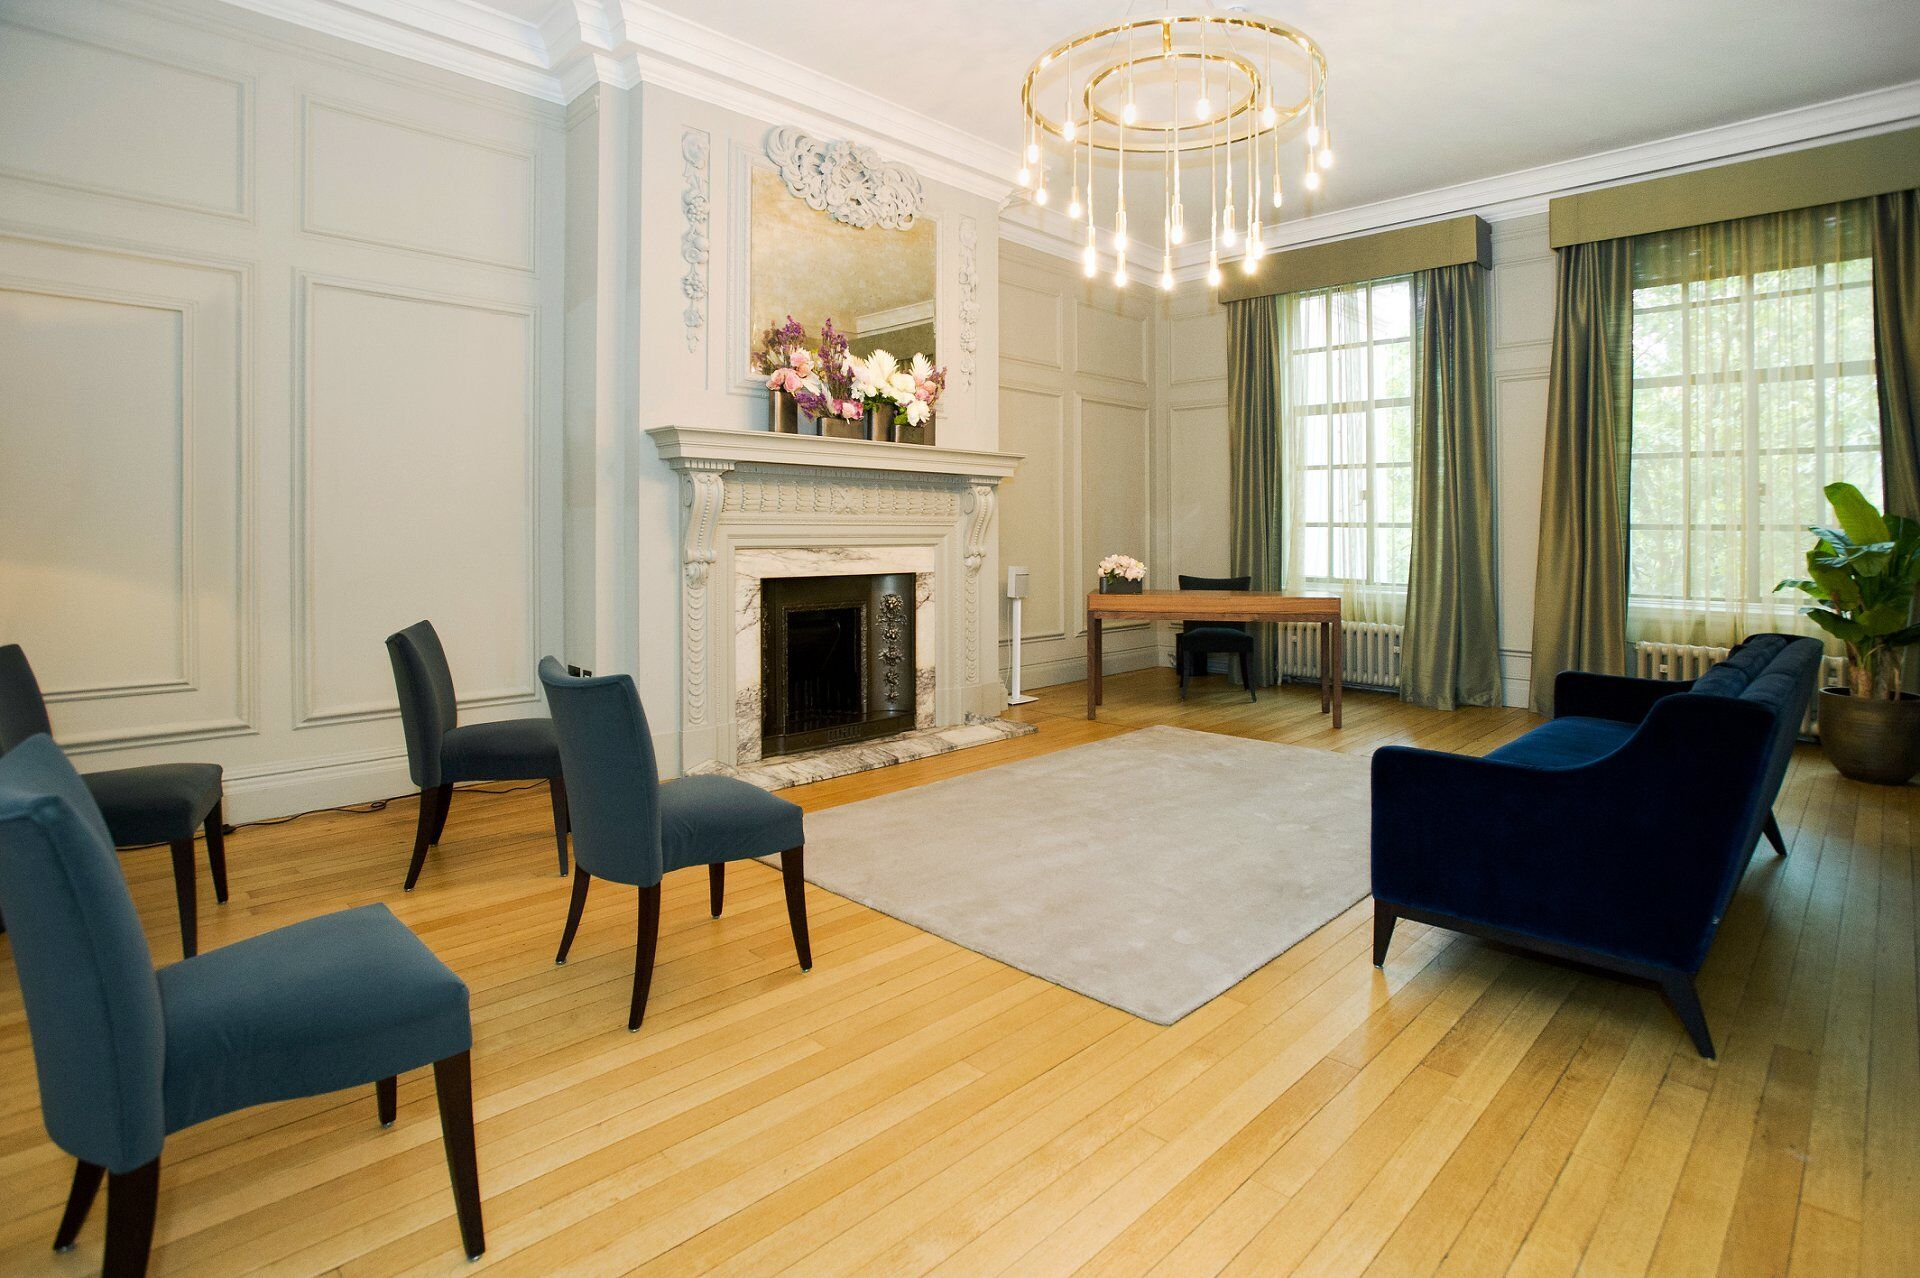 seating for 5 or 6 guests in the soho room showing the new covid 19 room layout for safety